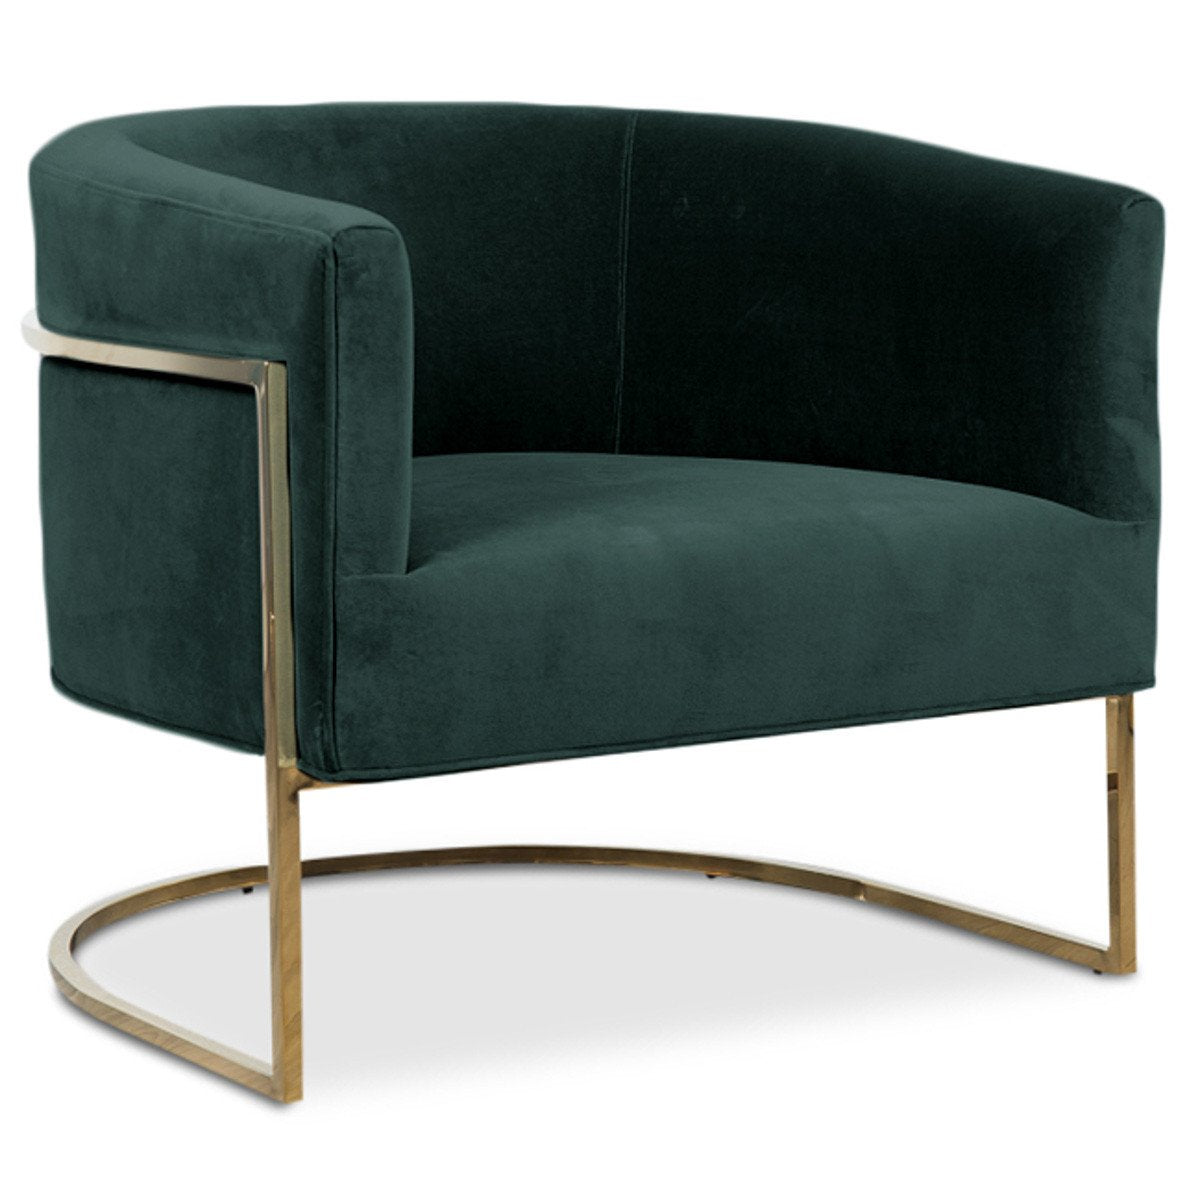 Furniture Factory Outlet Dallas: Lisbon Chair In Shiny Brass And Hunter Green Velvet